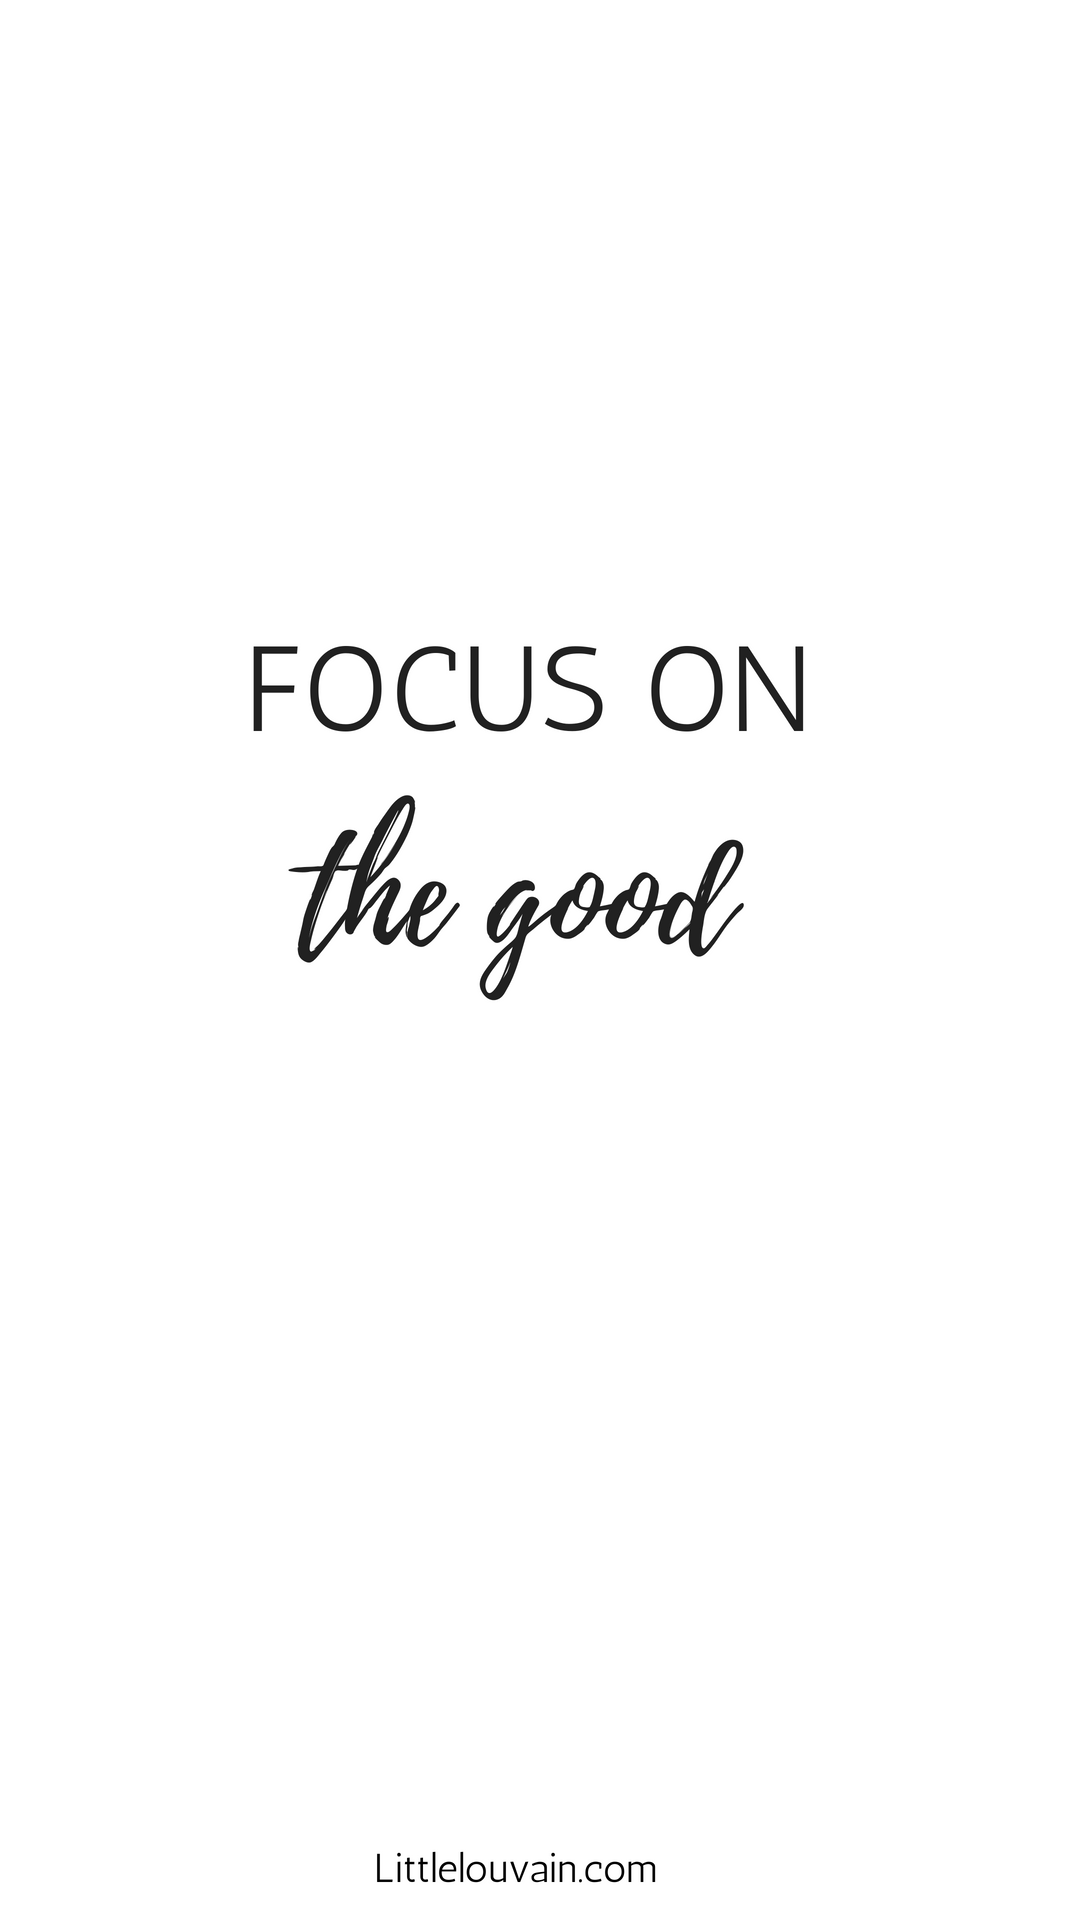 Focus On The Good Lifes Too Short To Focus On All Things